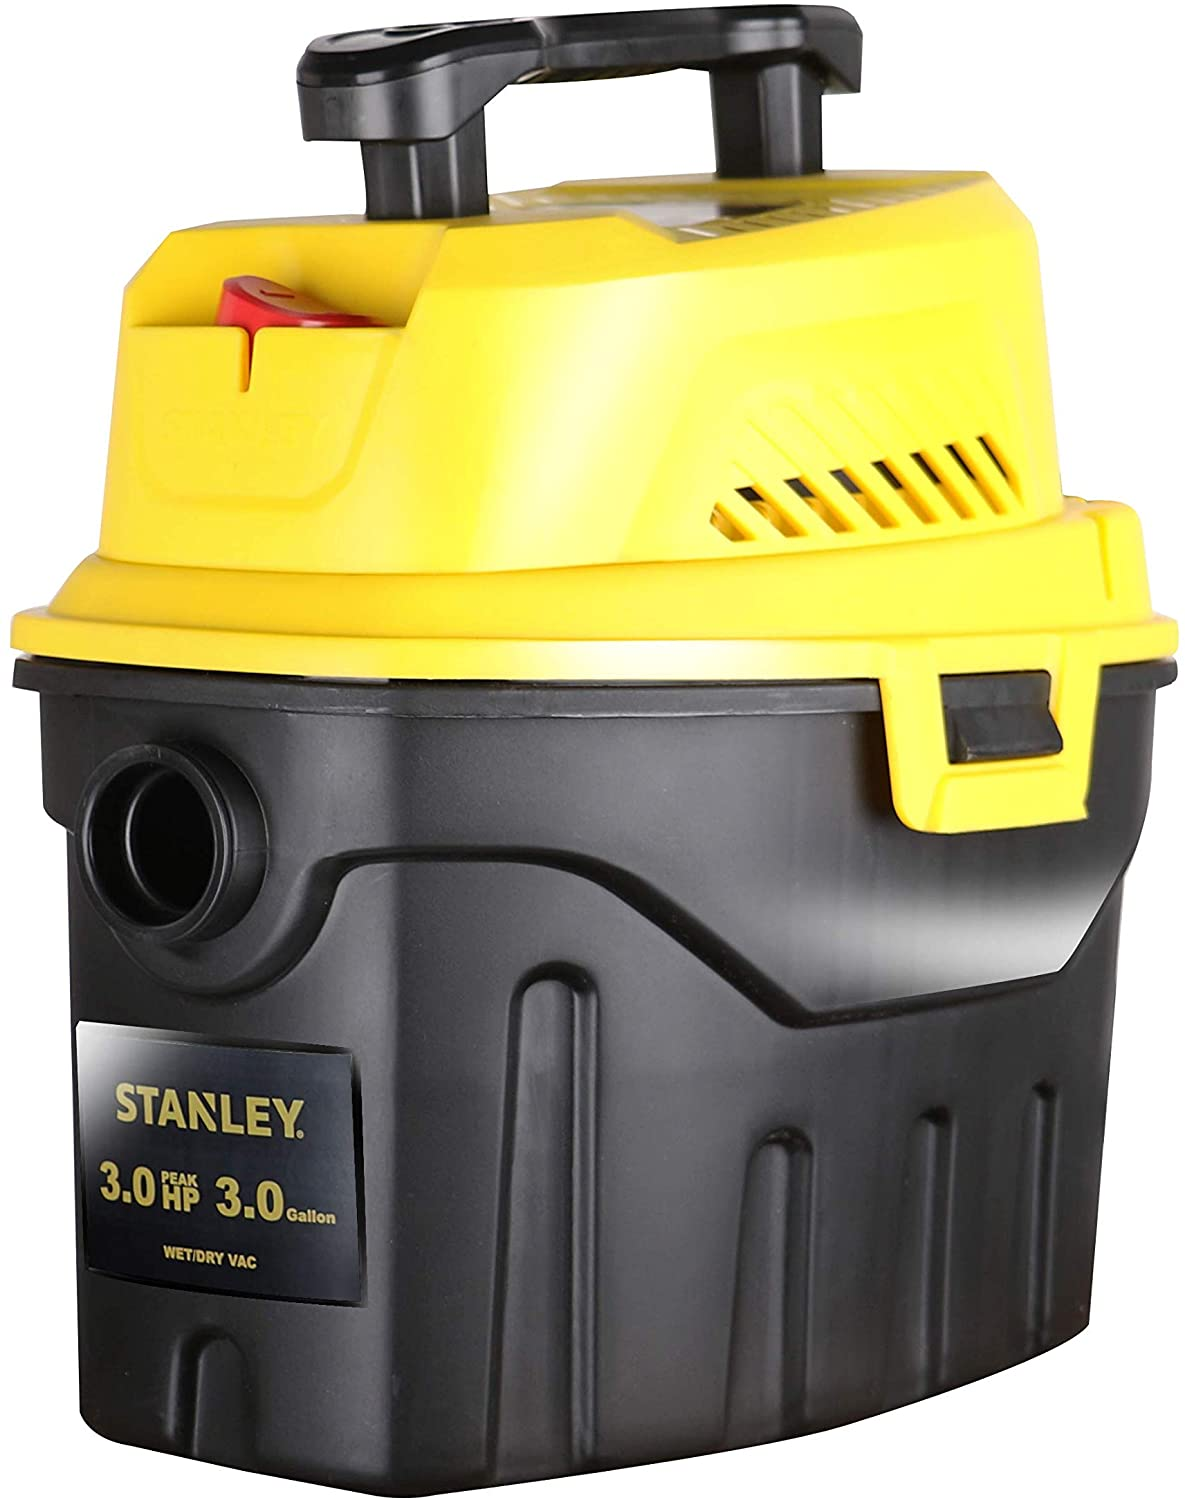 Stanley SL18910P-3 Wet/Dry, 3 Gallon, 3 Horsepower, Portable Car Vacuum, 3.0 HP AC, Black